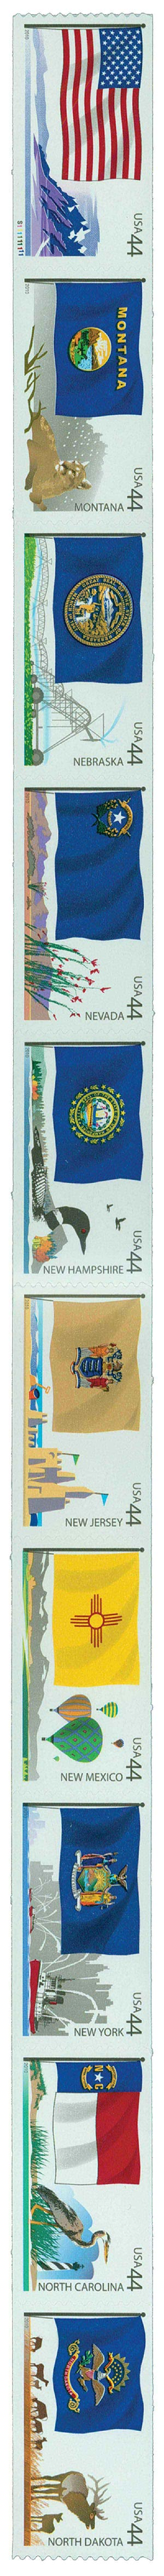 2010 44c Flags of Our Nation: 4th Edition, strip of 10 stamps